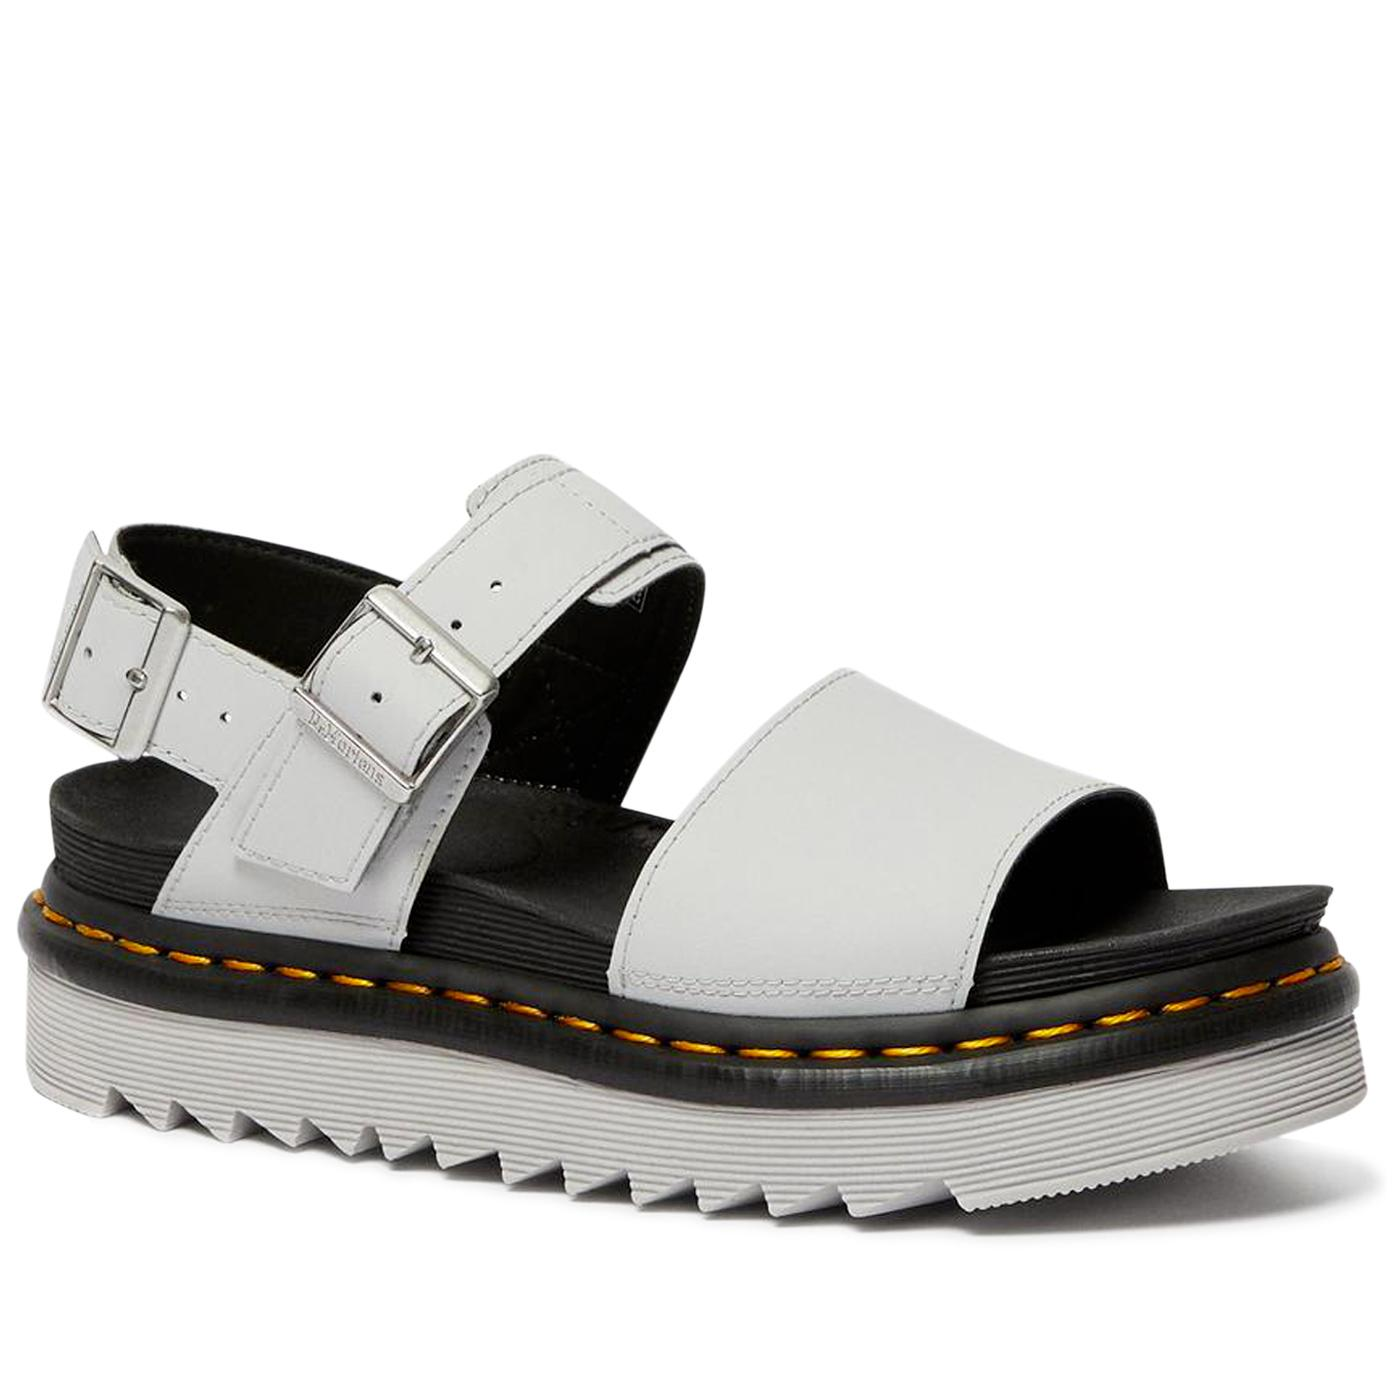 Voss DR MARTENS Womens Hydro Leather Sandals (LG)